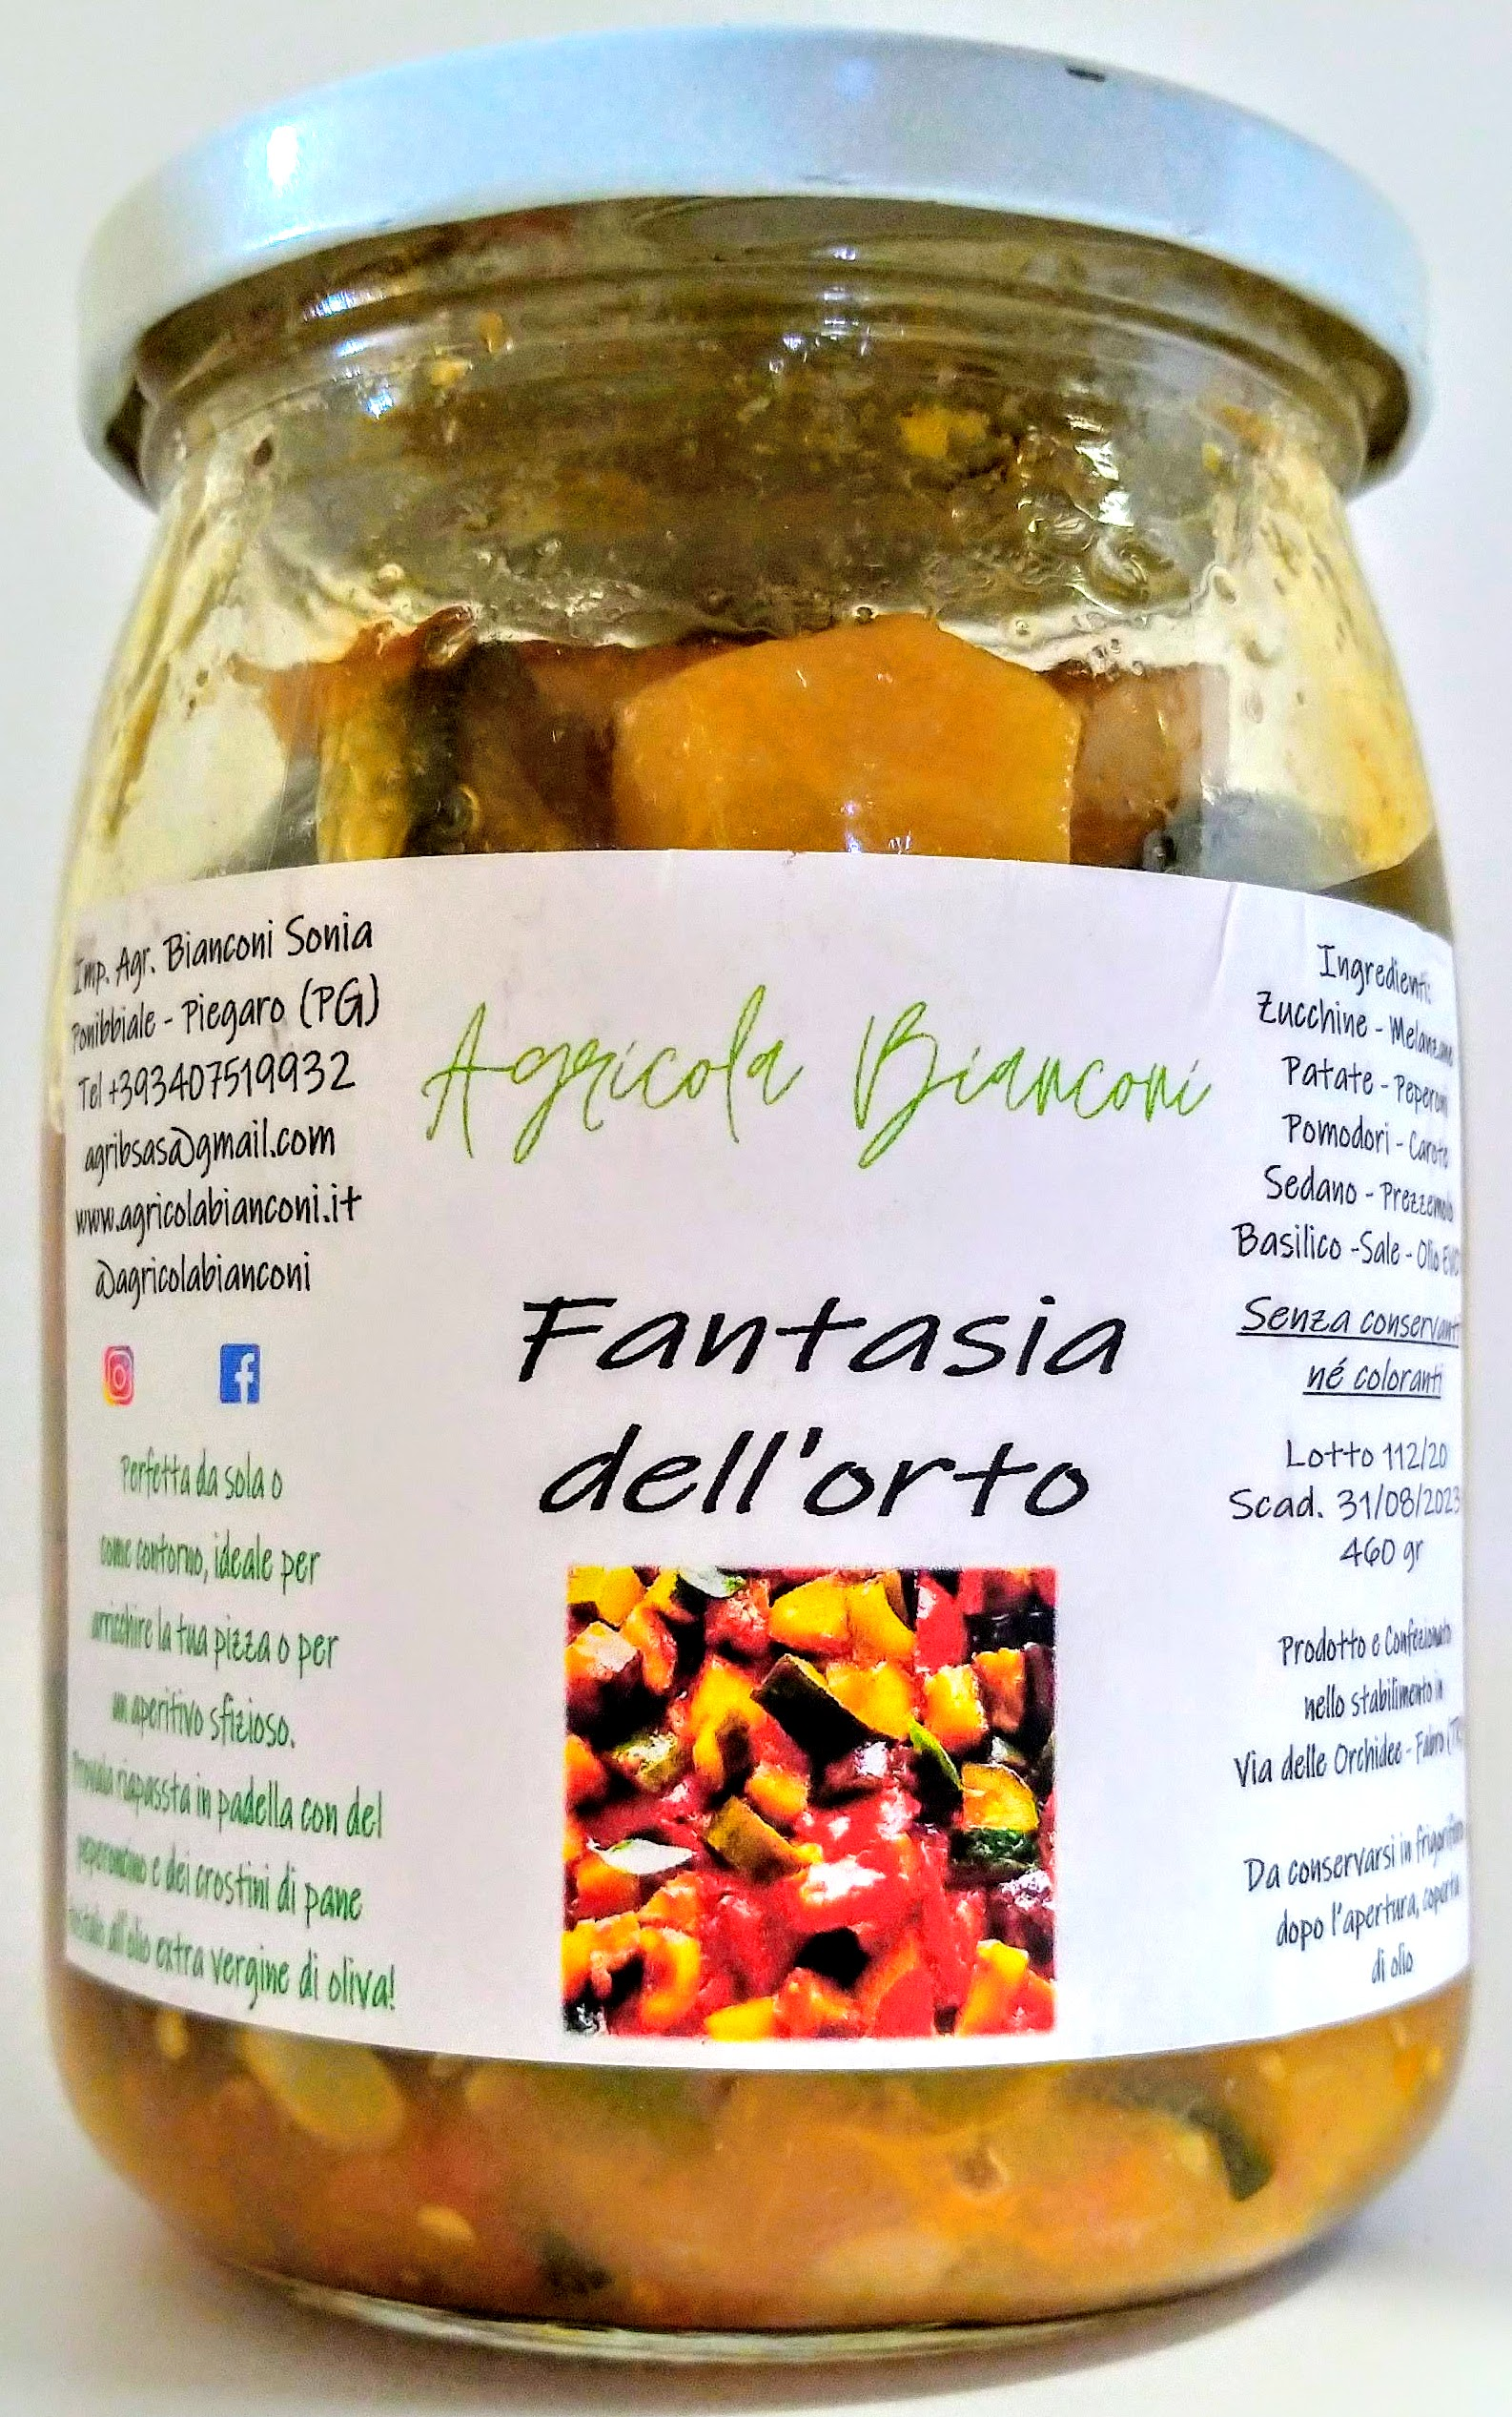 FANTASIA DELL'ORTO 460 GR - FANTASY OF THE GARDEN 460 GR